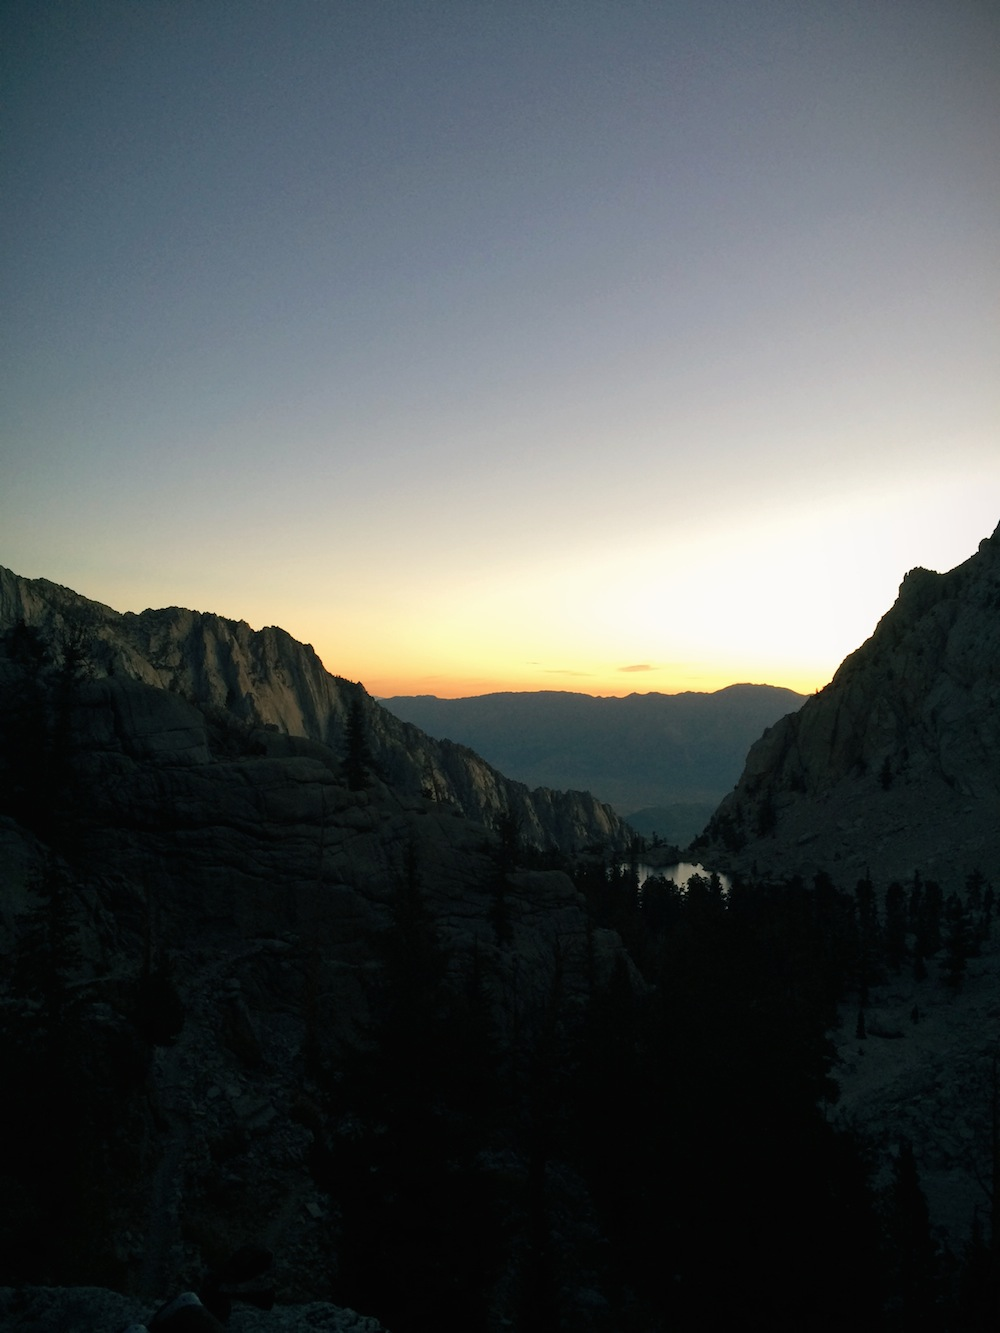 Sunrise over Owens Valley.